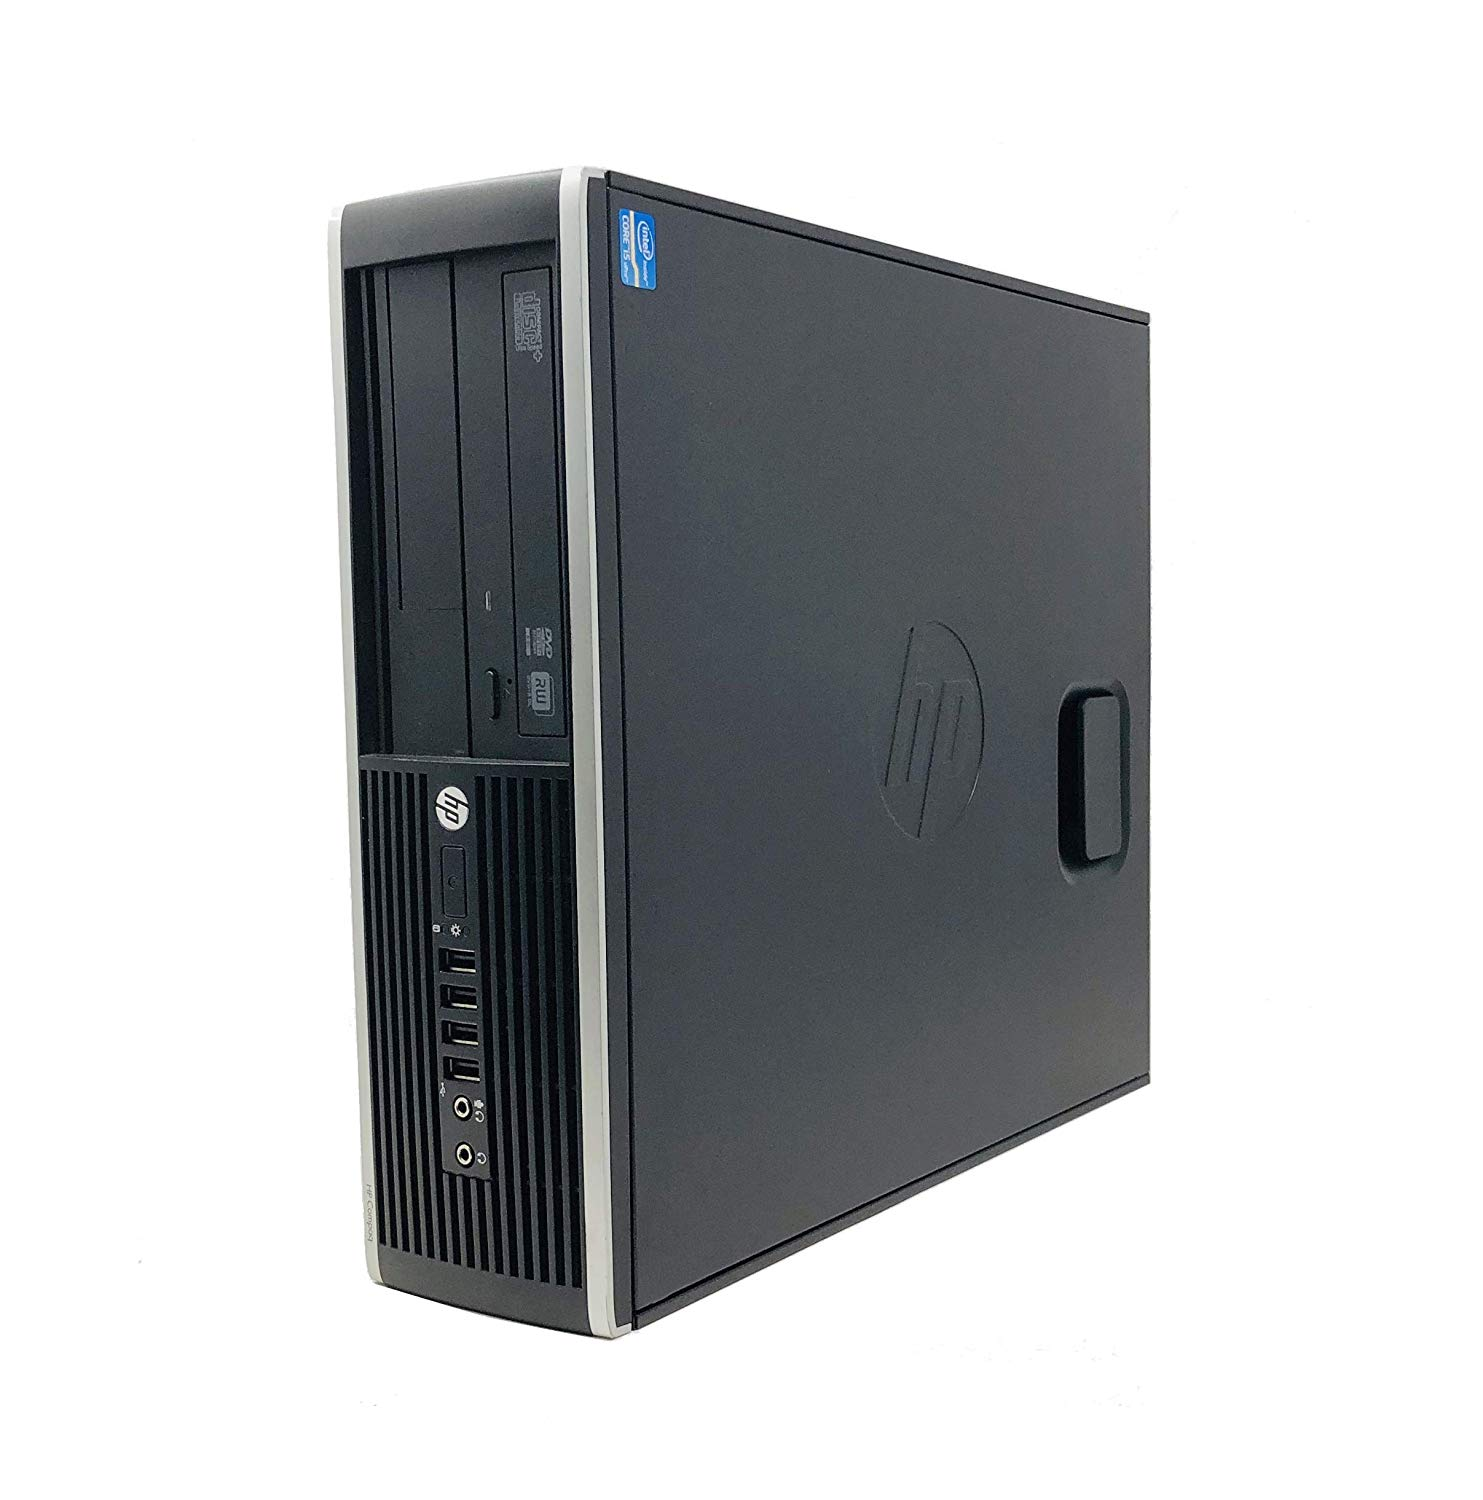 Hp Elite 8200 - Ordenador de sobremesa (<font><b>Intel</b></font> <font><b>i5</b></font>-<font><b>2400</b></font>, 8GB de RAM, Disco SSD de 240GB , Windows 10 HOME) - (Reacondicionado) image